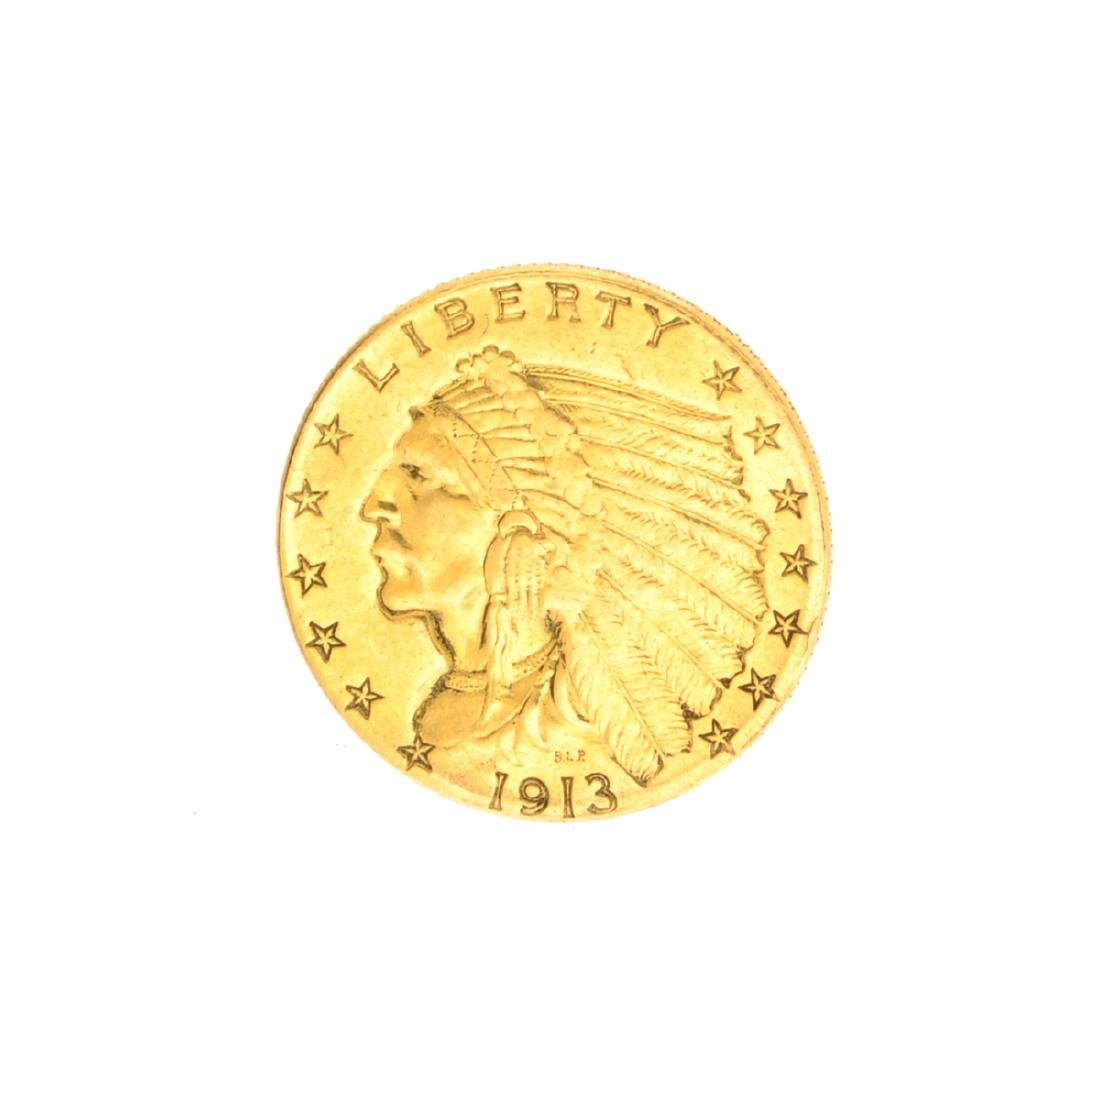 Very Rare 1913 $2.50 U.S. Indian Head Gold Coin Great